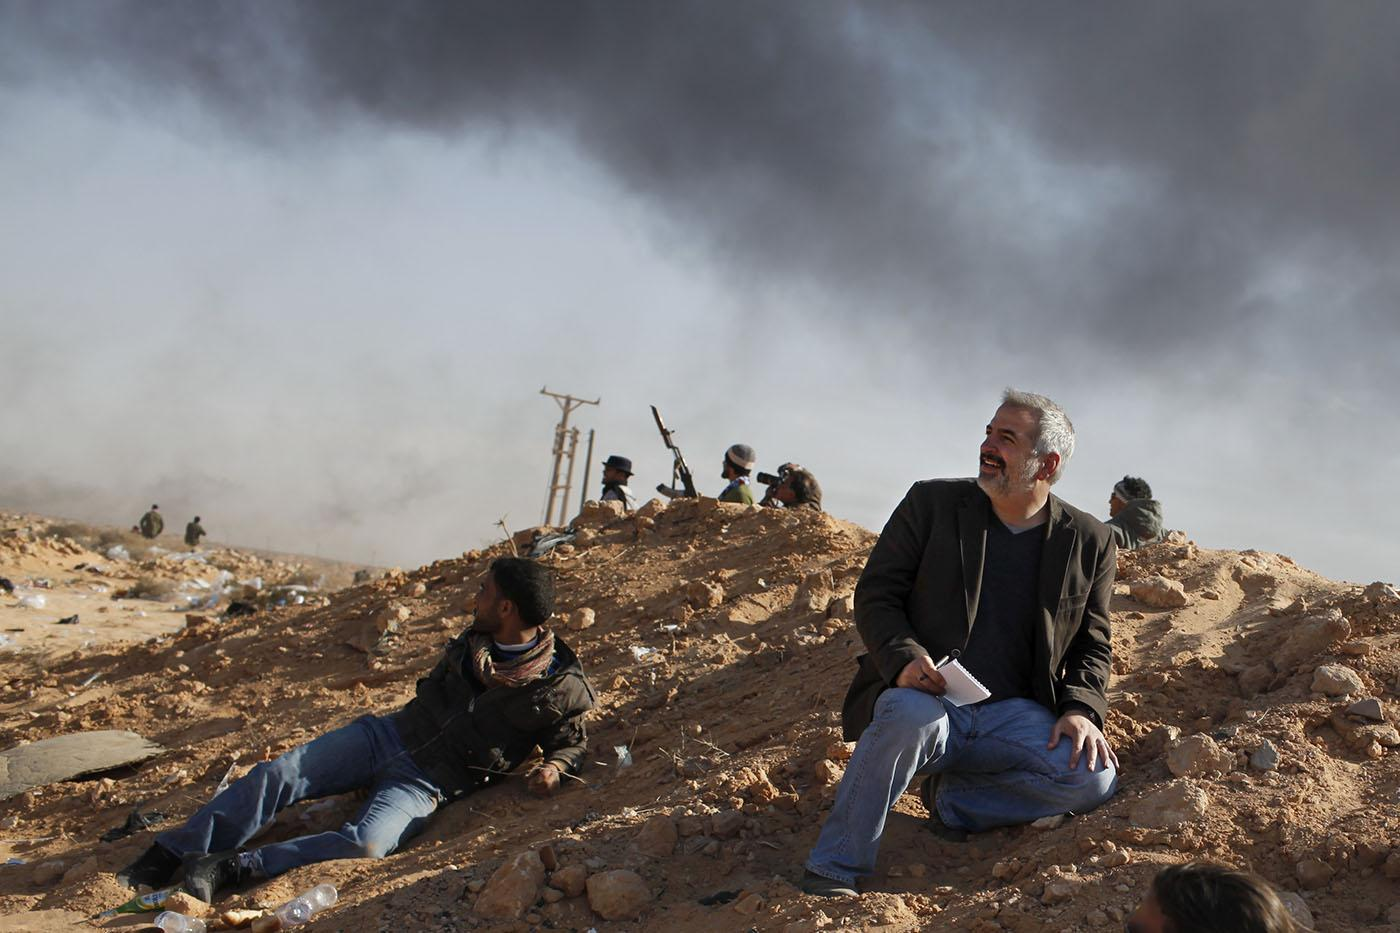 Journalist Anthony Shadid in the field.